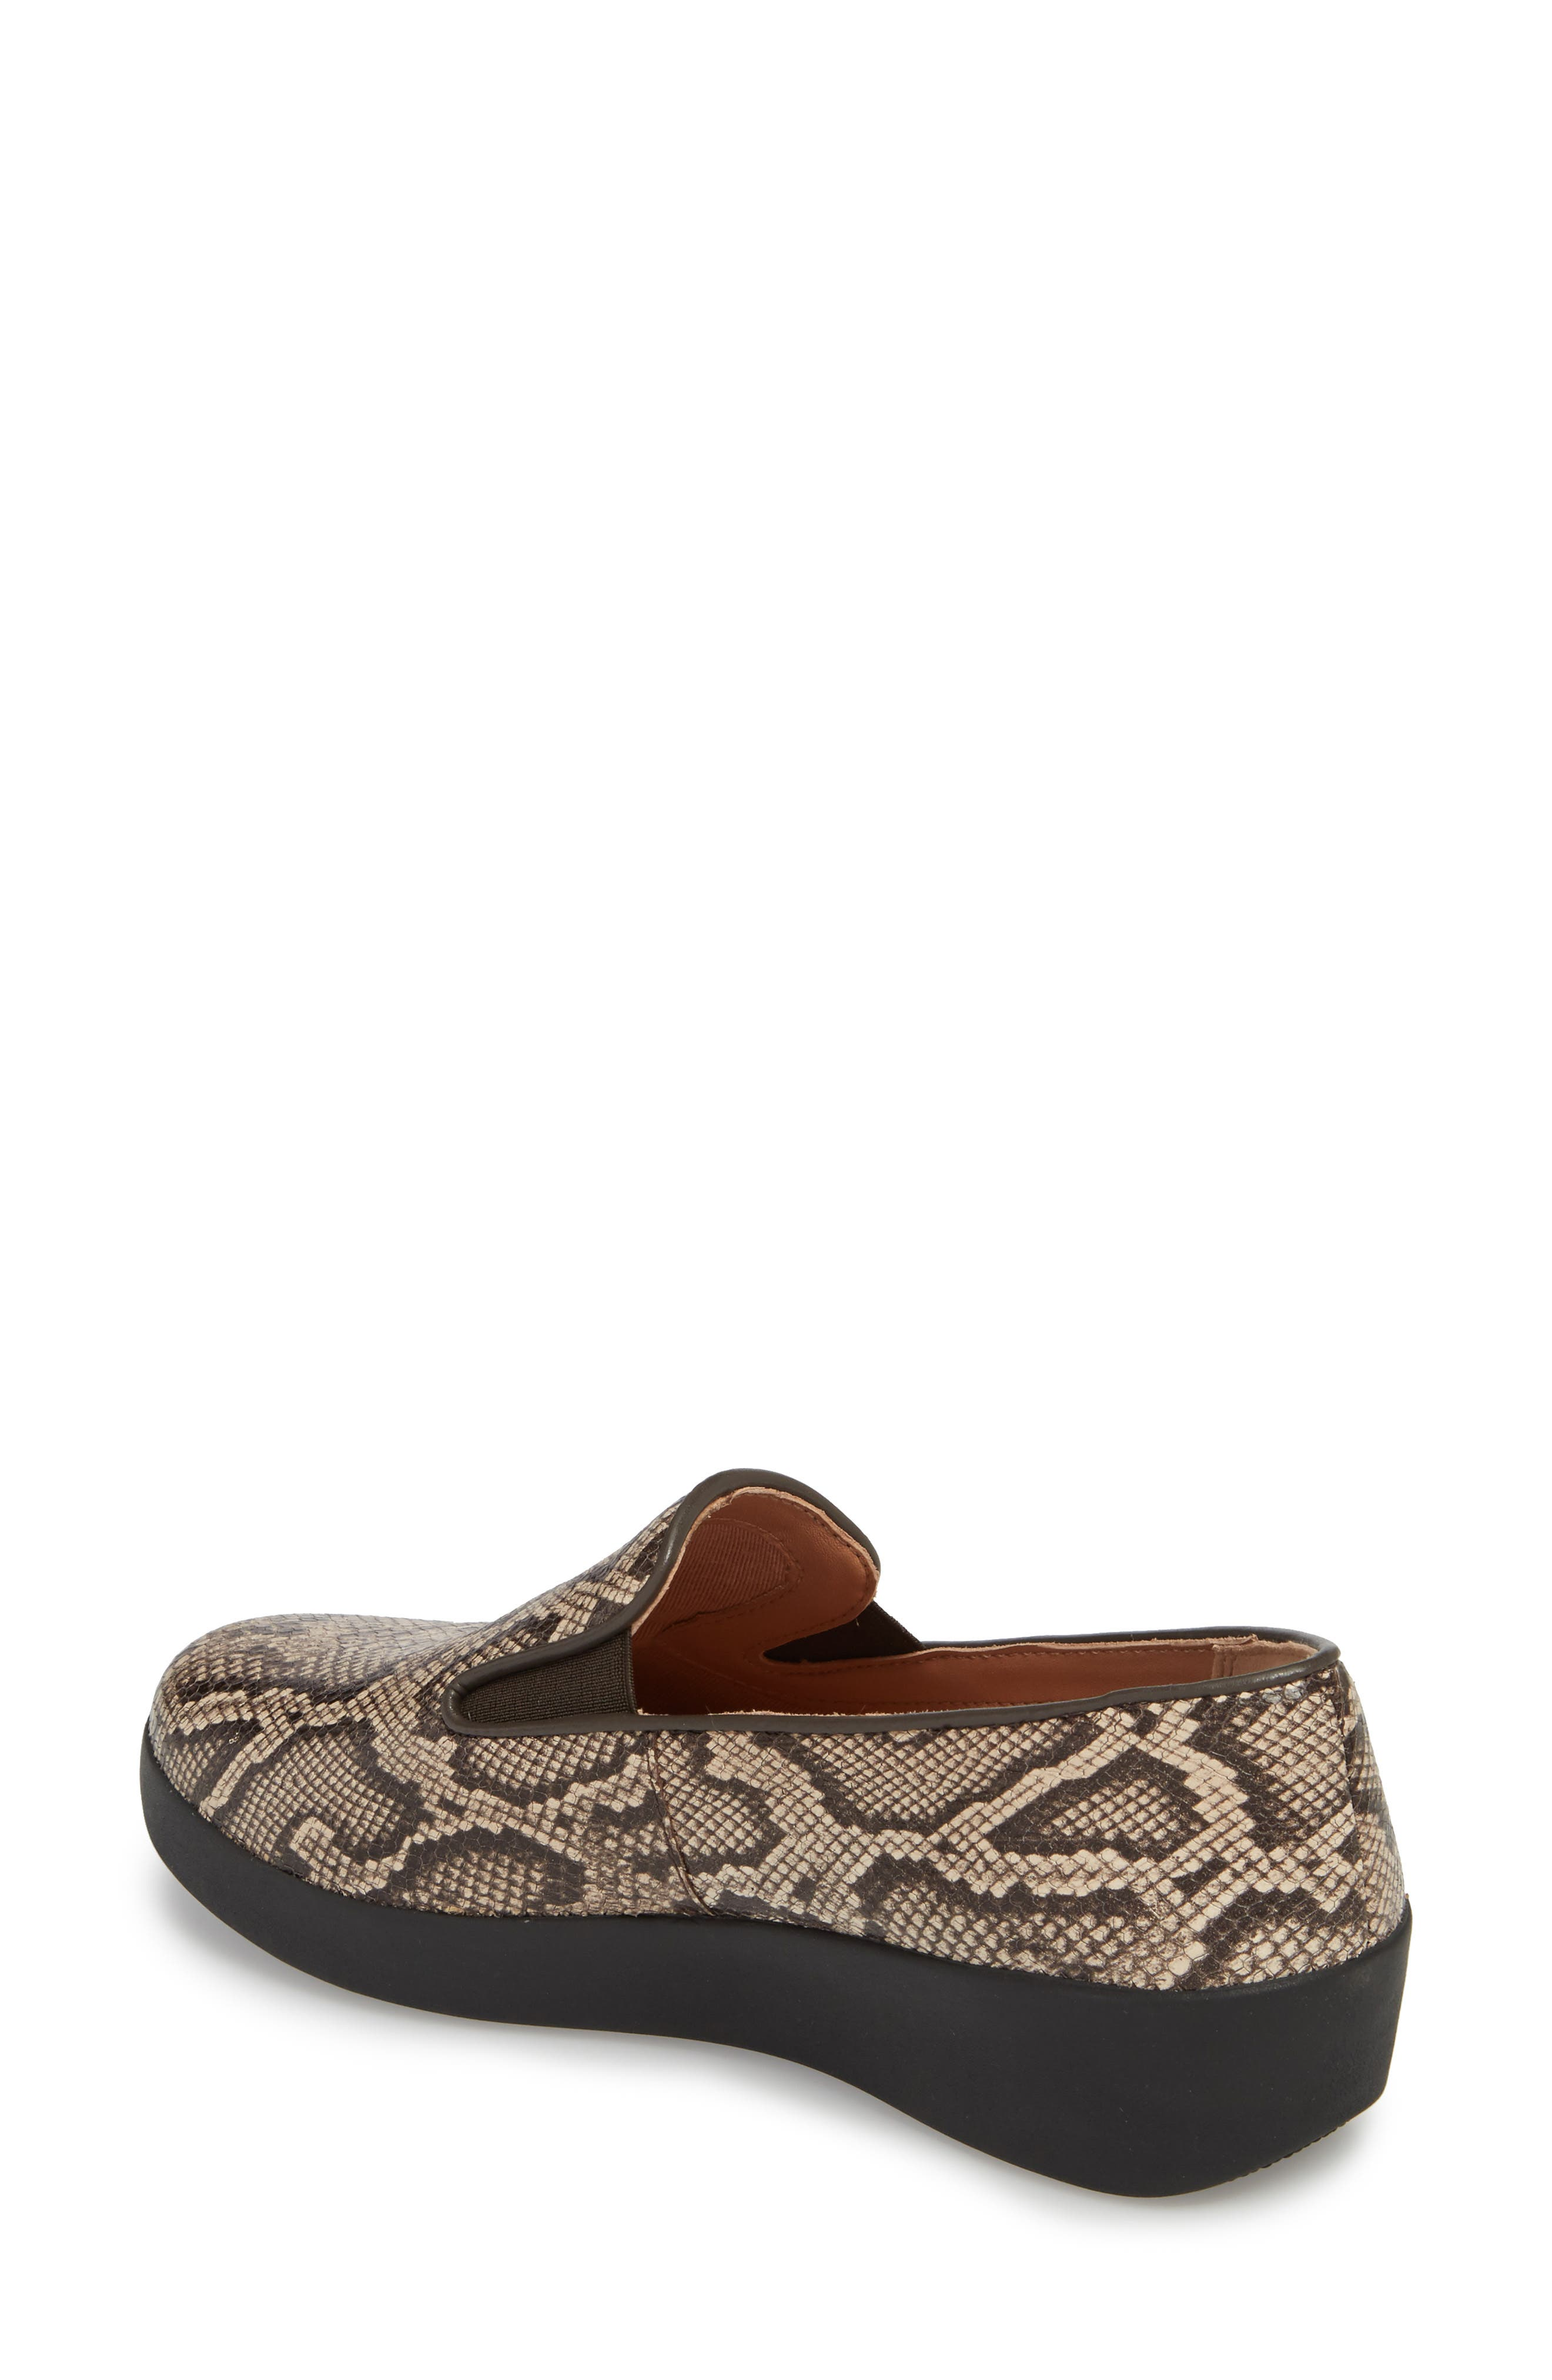 SuperSkate<sup>™</sup> Loafer,                             Alternate thumbnail 2, color,                             Taupe Snake Print Leather